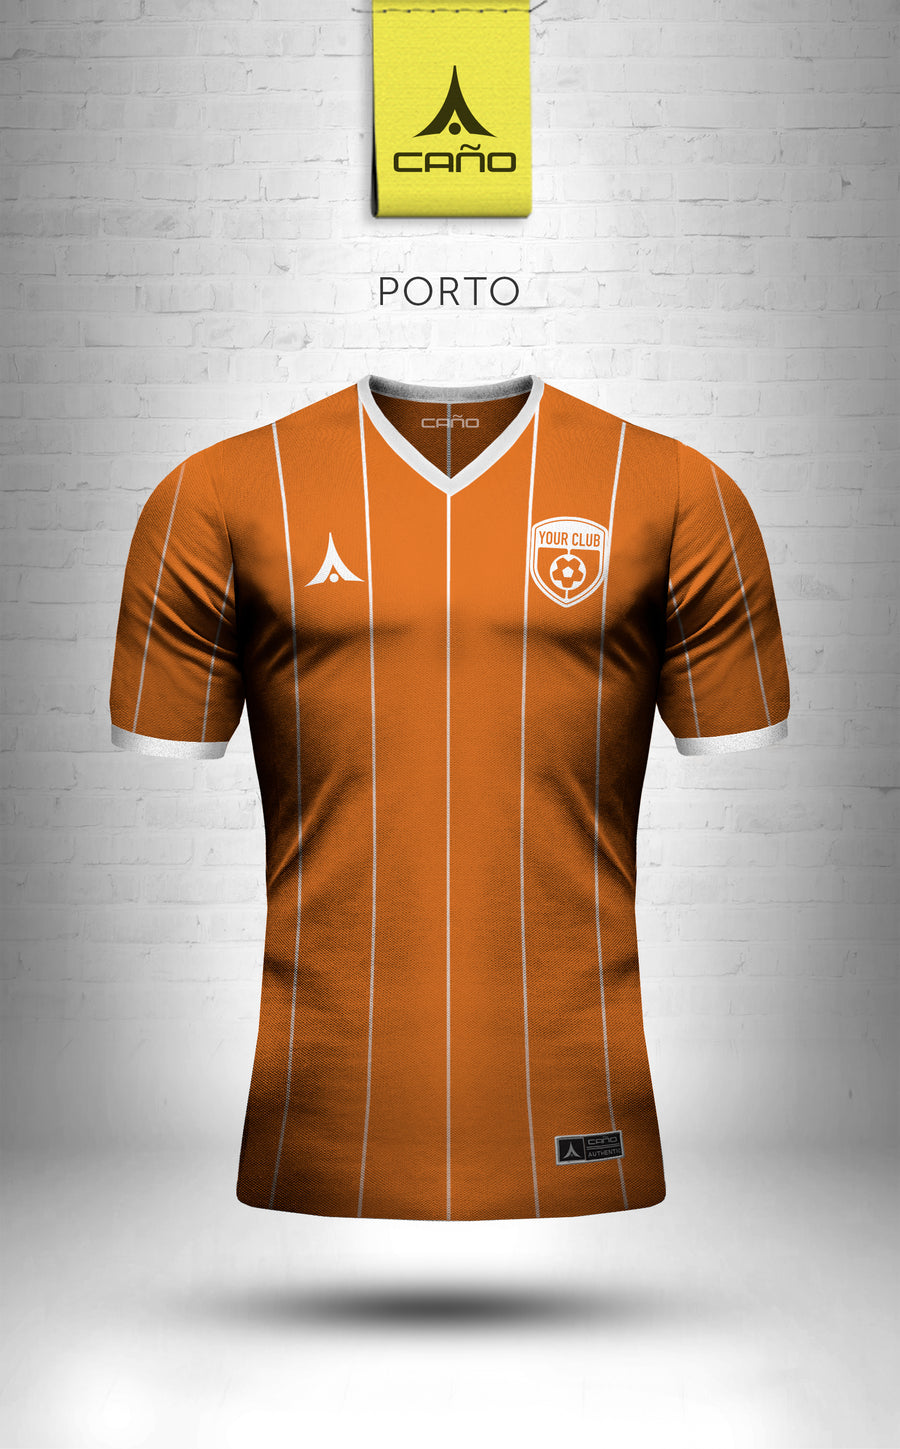 Porto in orange/white